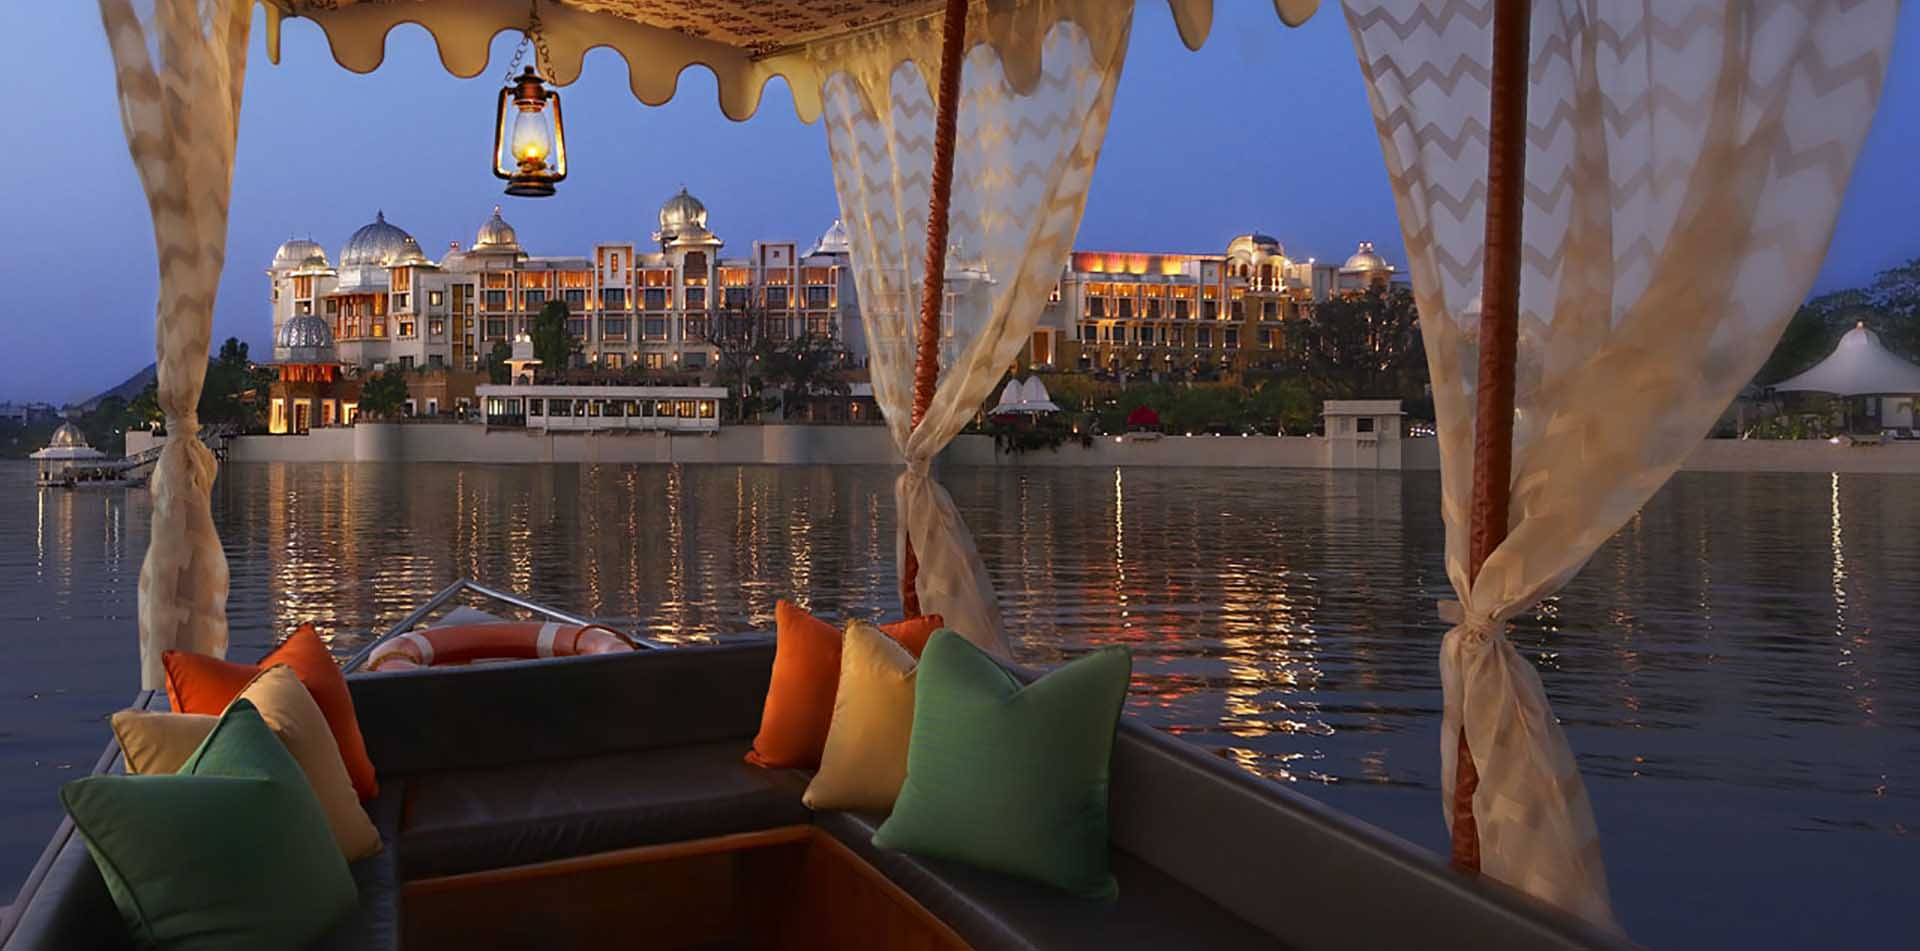 Asia India Rajasthan Udaipur view of Club Mahindra Resort Hotel from boat on the water - luxury vacation destinations